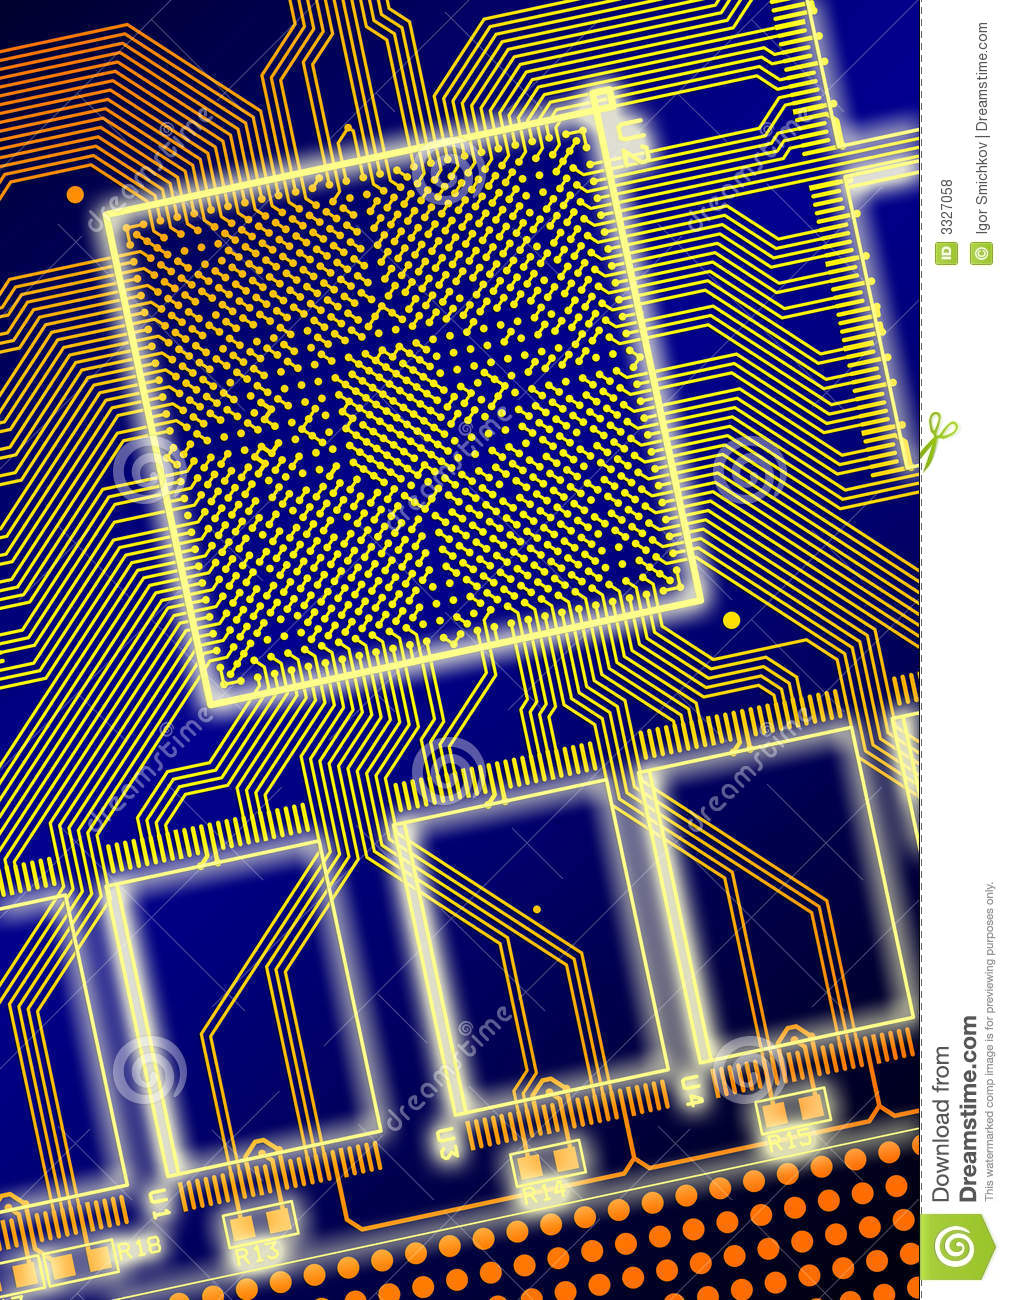 Printed Circuit Board Royalty Free Stock Photos Image 28246598